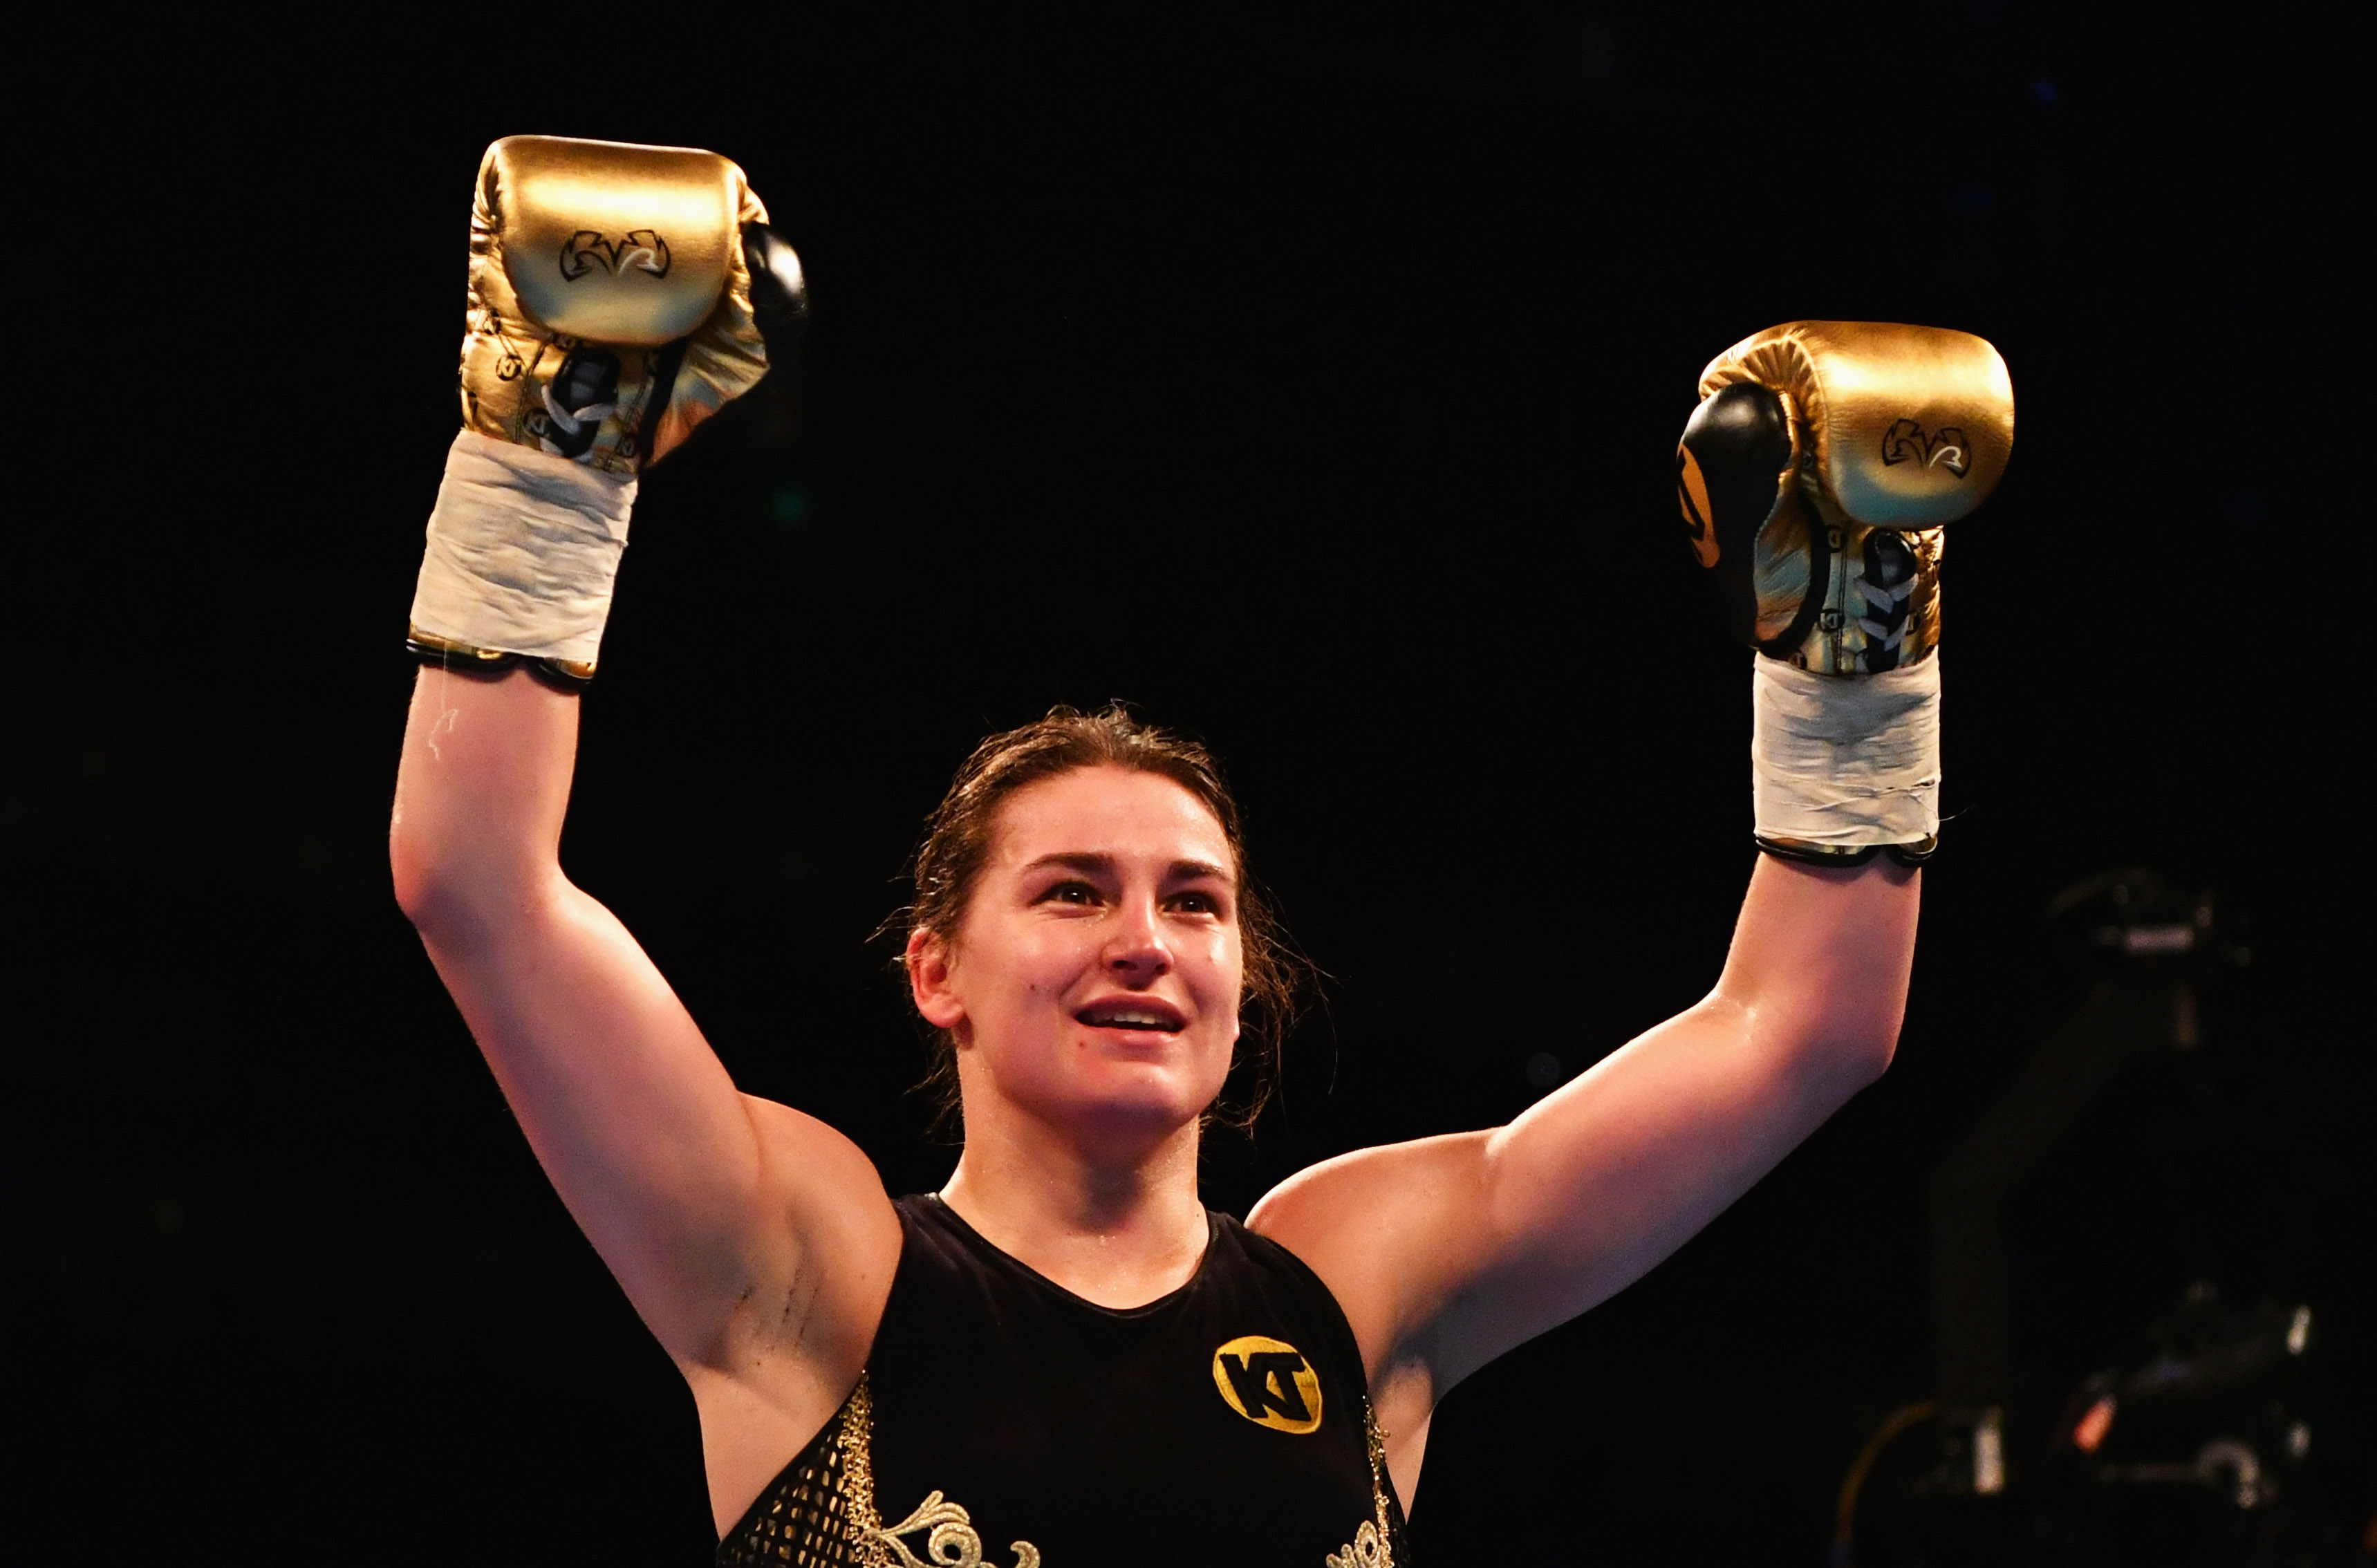 LONDON, ENGLAND - MARCH 04: Katie Taylor celebrates victory over Monica Gentili after their Super-Featherweight contest at The O2 Arena on March 4, 2017 in London, England. (Photo by Dan Mullan/Getty Images)